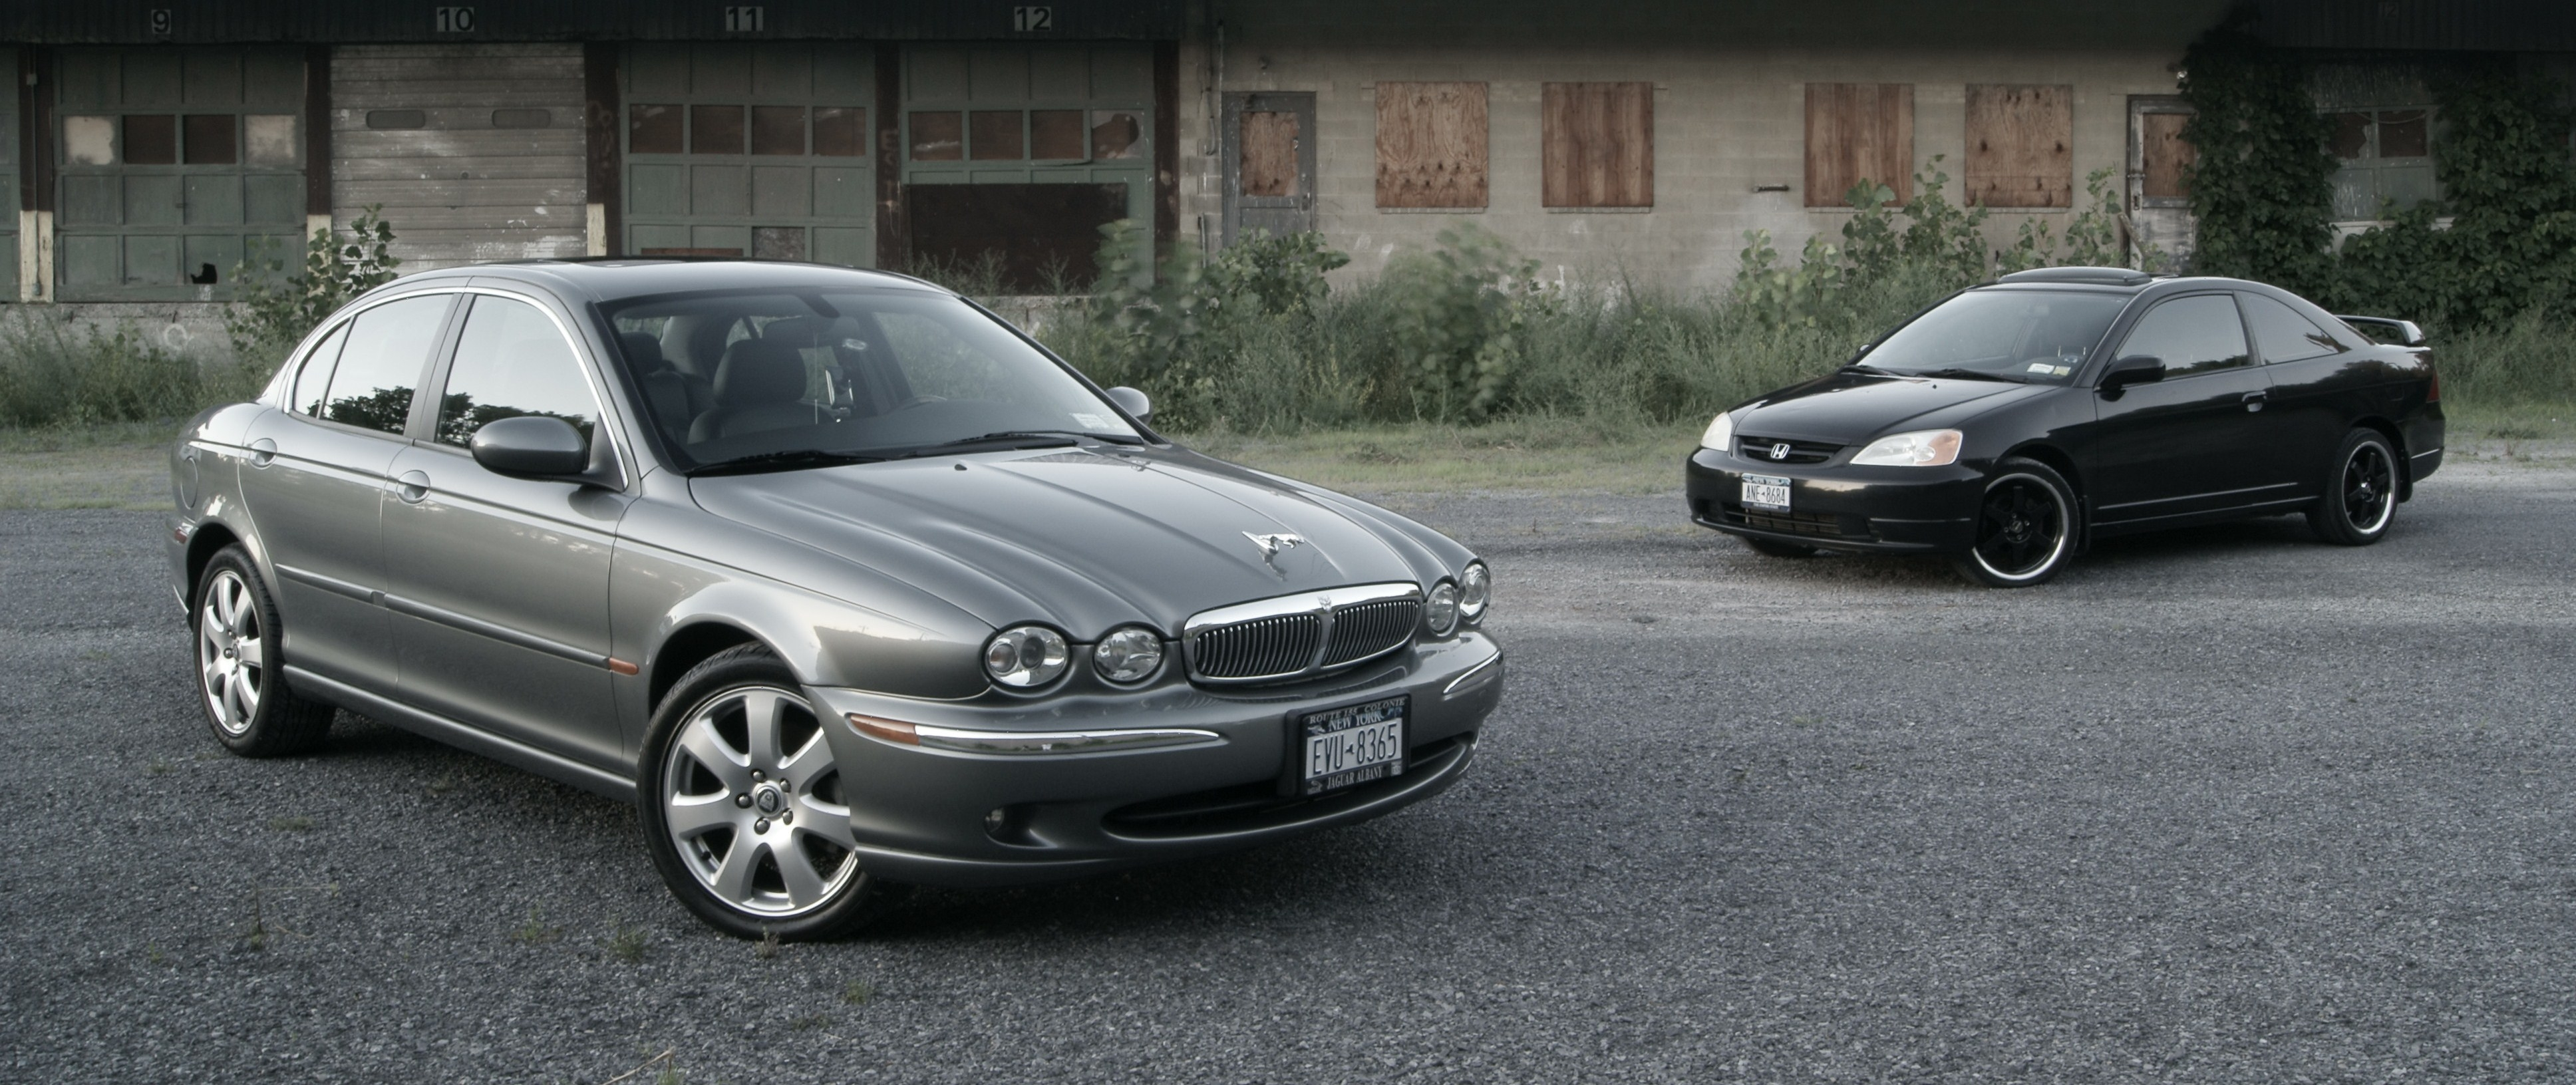 RENEGADE187X 2005 Jaguar X-Type